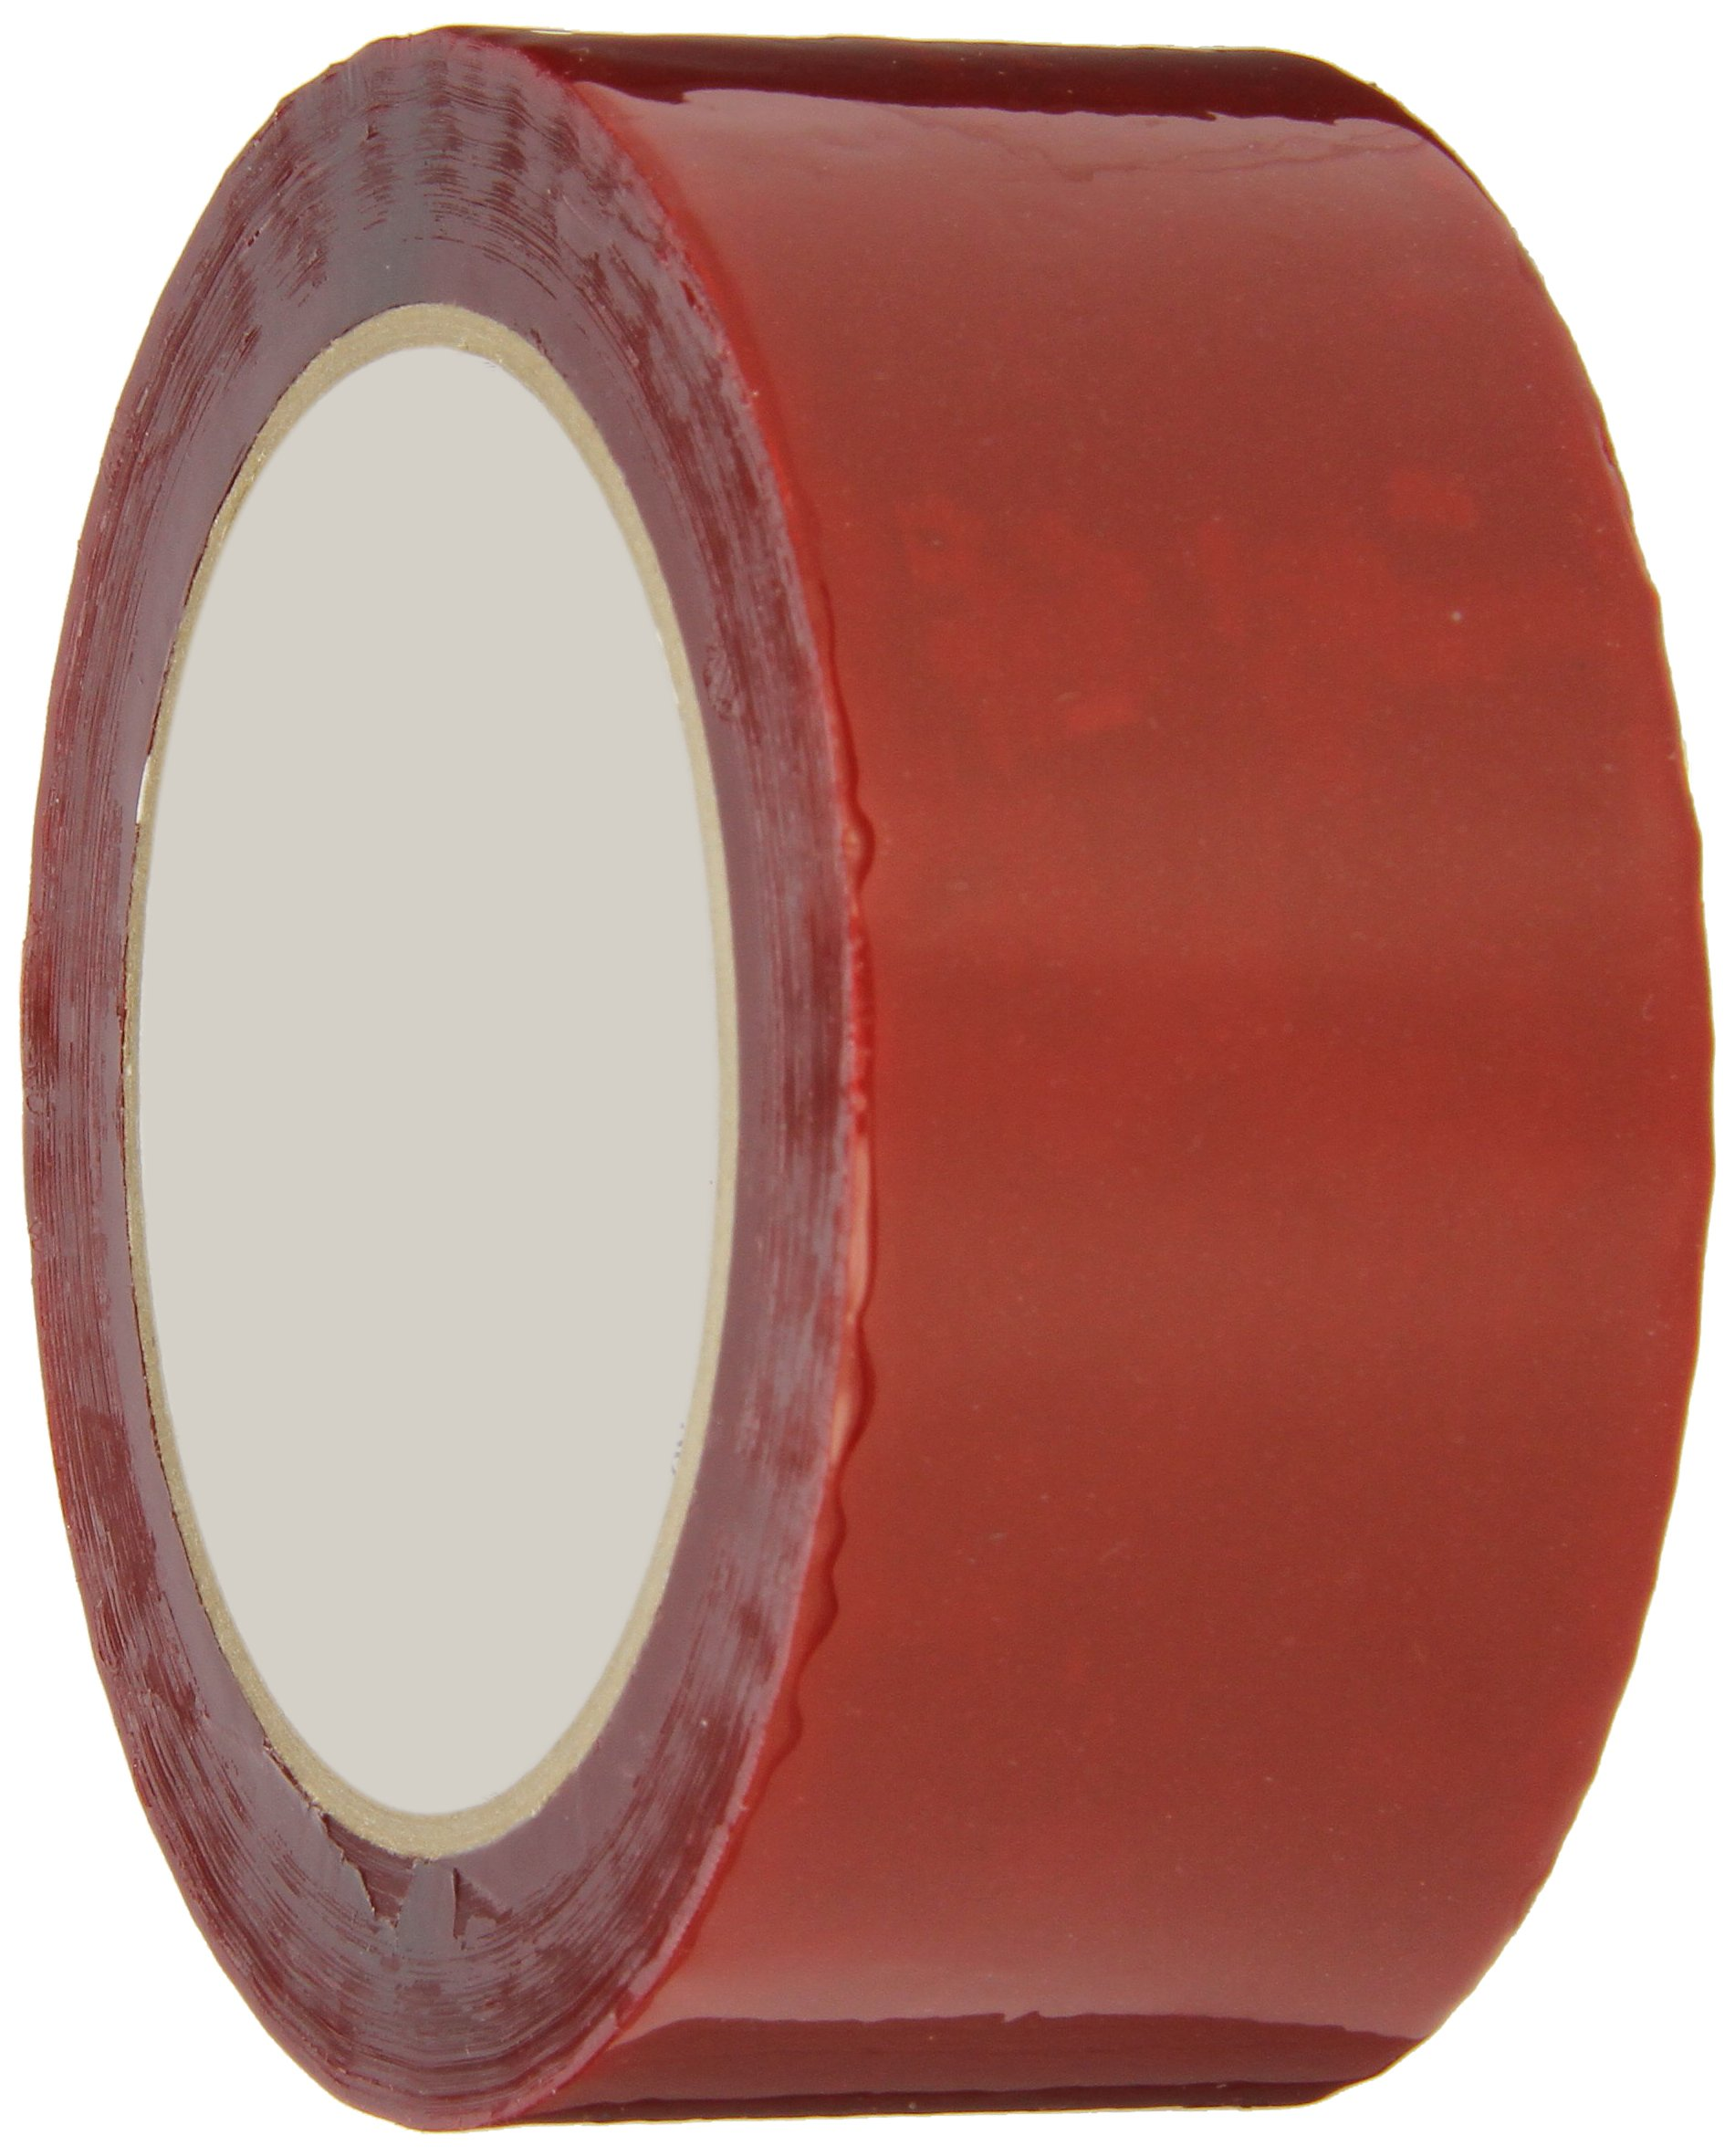 Intertape Polymer Group 85561 Sheathing Tape, 1.88'' x 54.6 yards, Red, Case of 24 Rolls